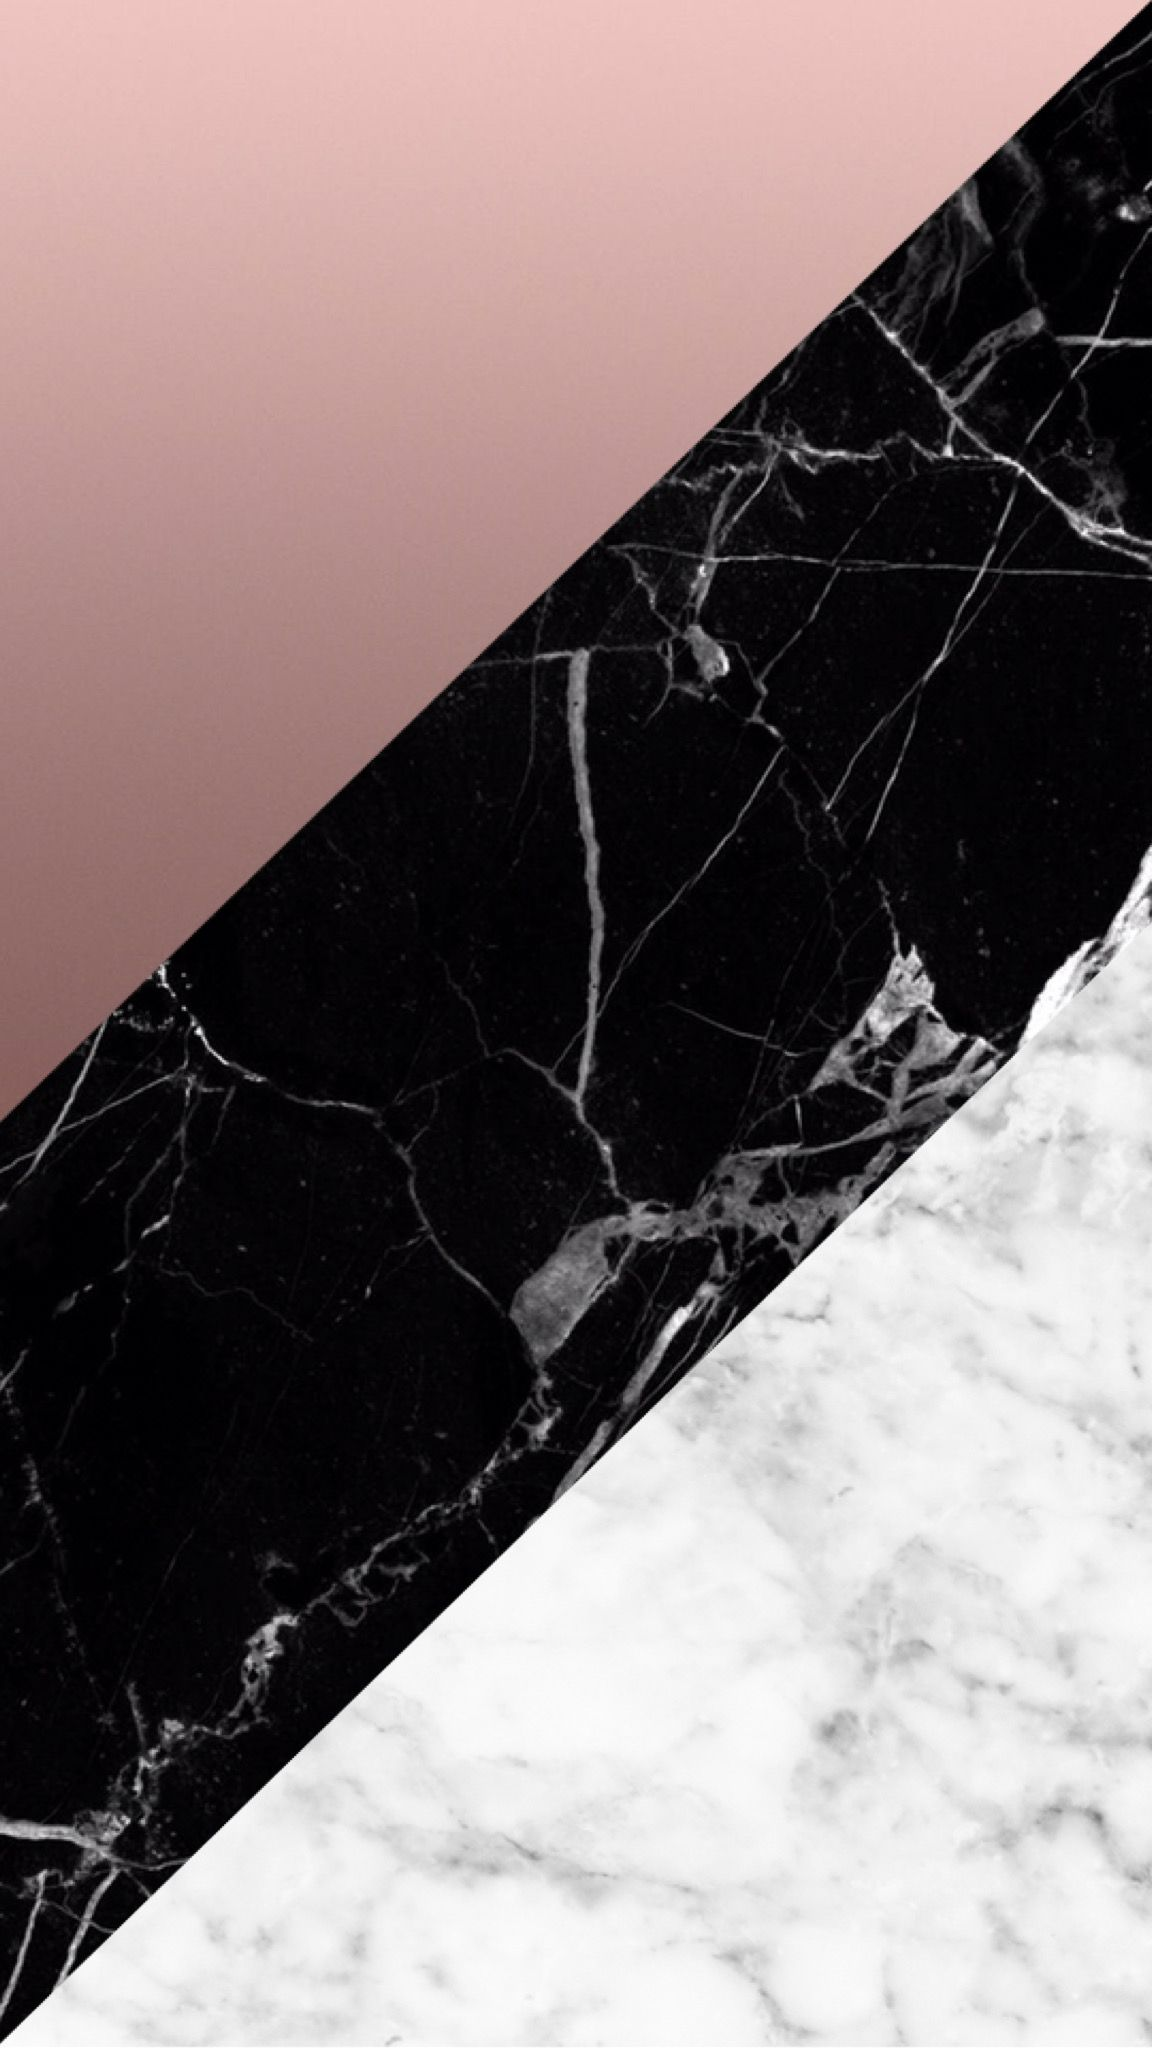 Pin By C C On Rose Gold Marble Wallpaper Iphone Wallpaper Lights Geometric Wallpaper Iphone Gold Marble Wallpaper